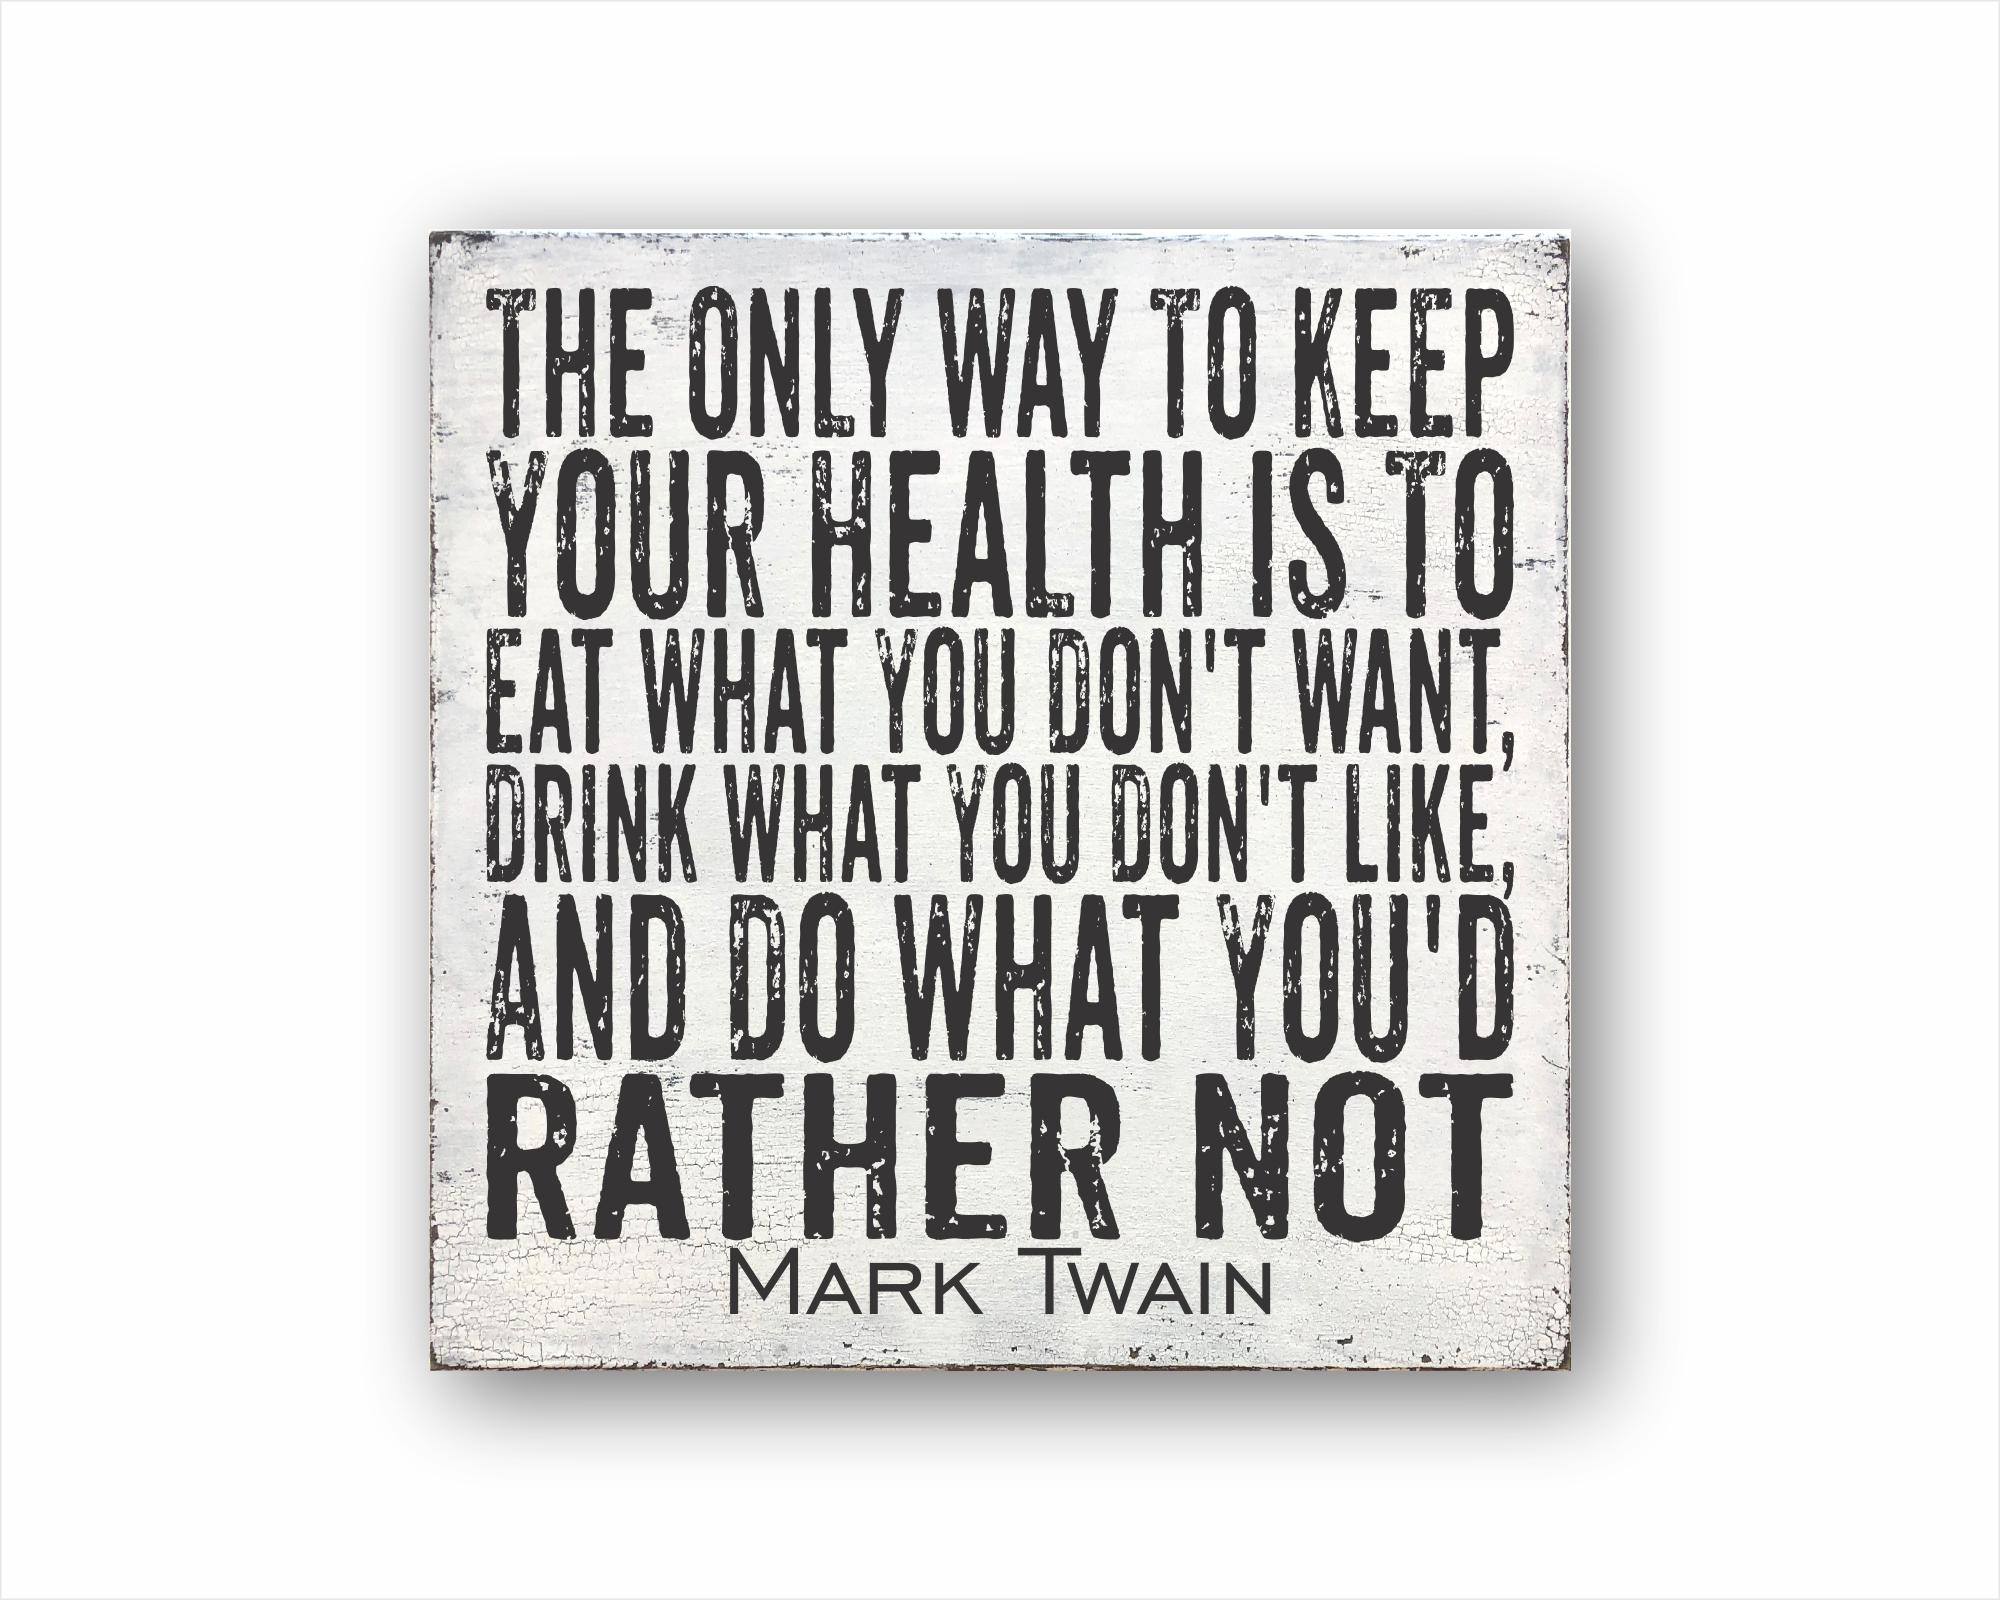 The Only Way To Keep Your Health Is To Eat What You Don't Want Drink What You Don't Like And Do What You'd Rather Not Mark Twain: Rustic Square Wood Sign